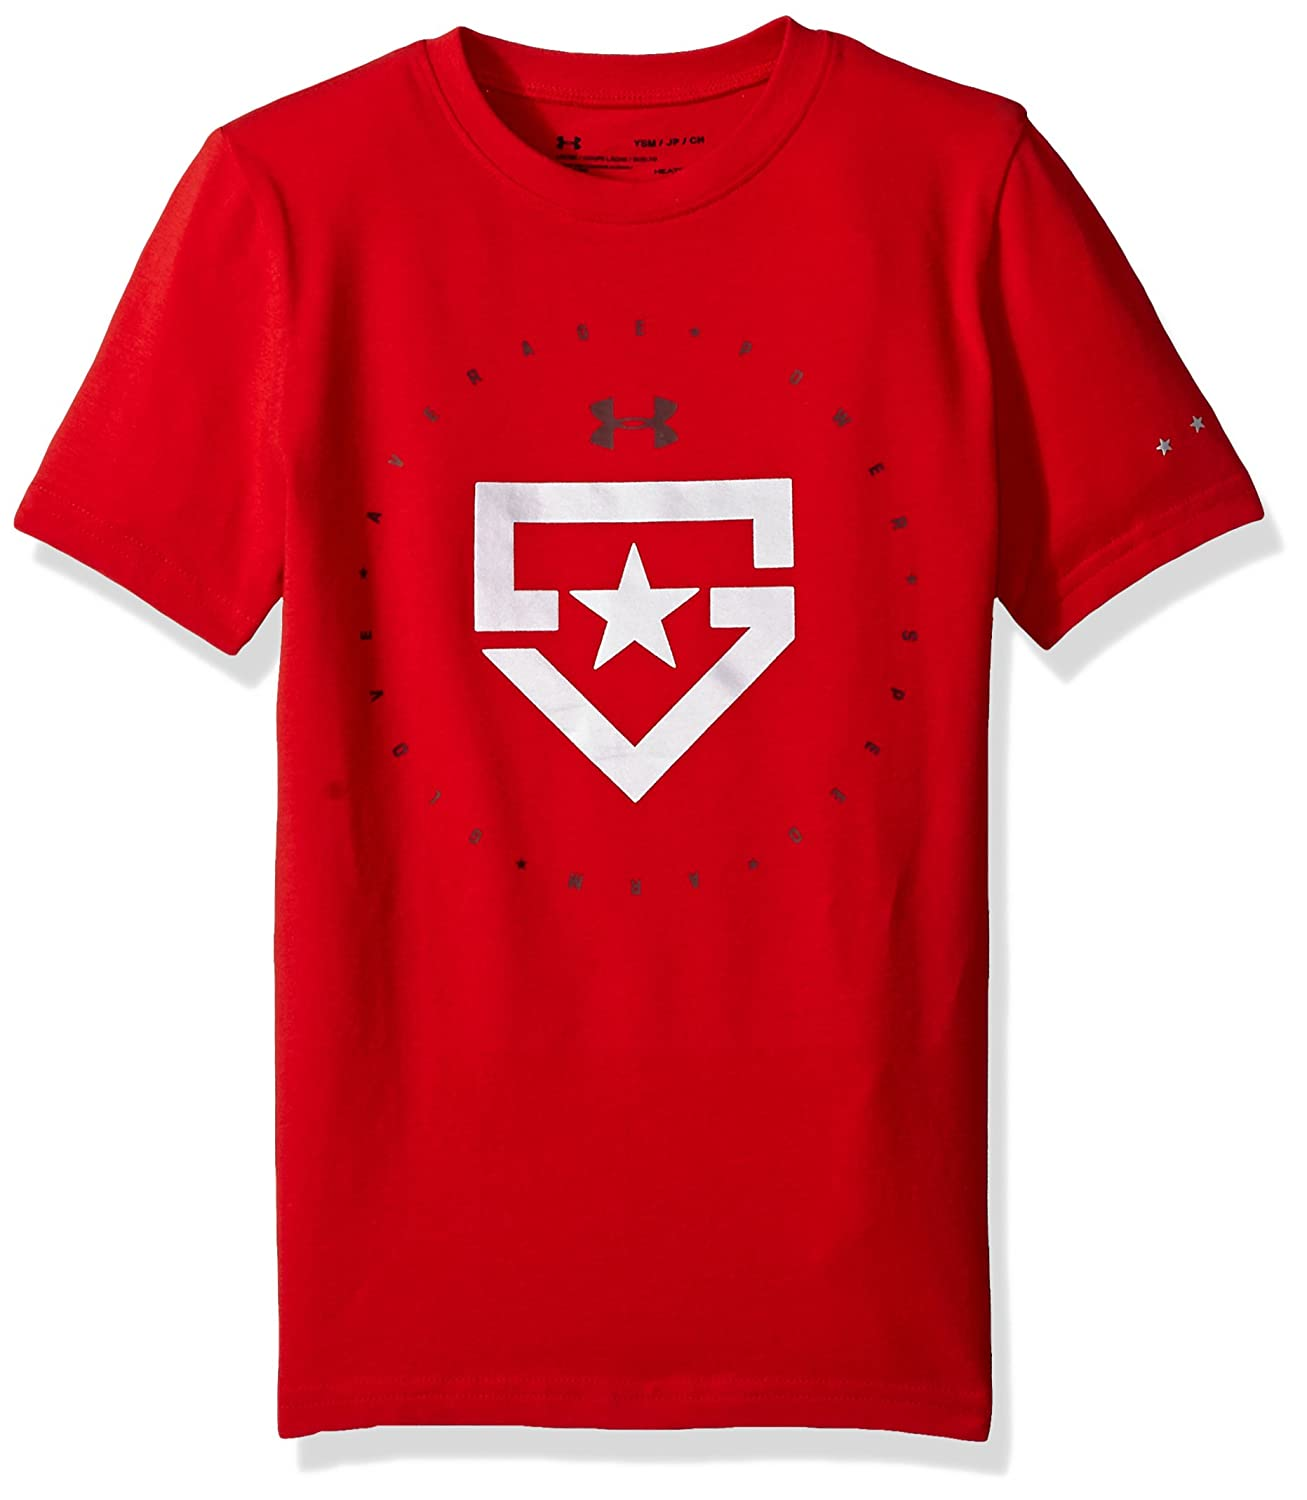 Under Armour Boys 'ヒーターTシャツ B071HW9S3T Youth Small|Red (600)/Metallic Silver Red (600)/Metallic Silver Youth Small